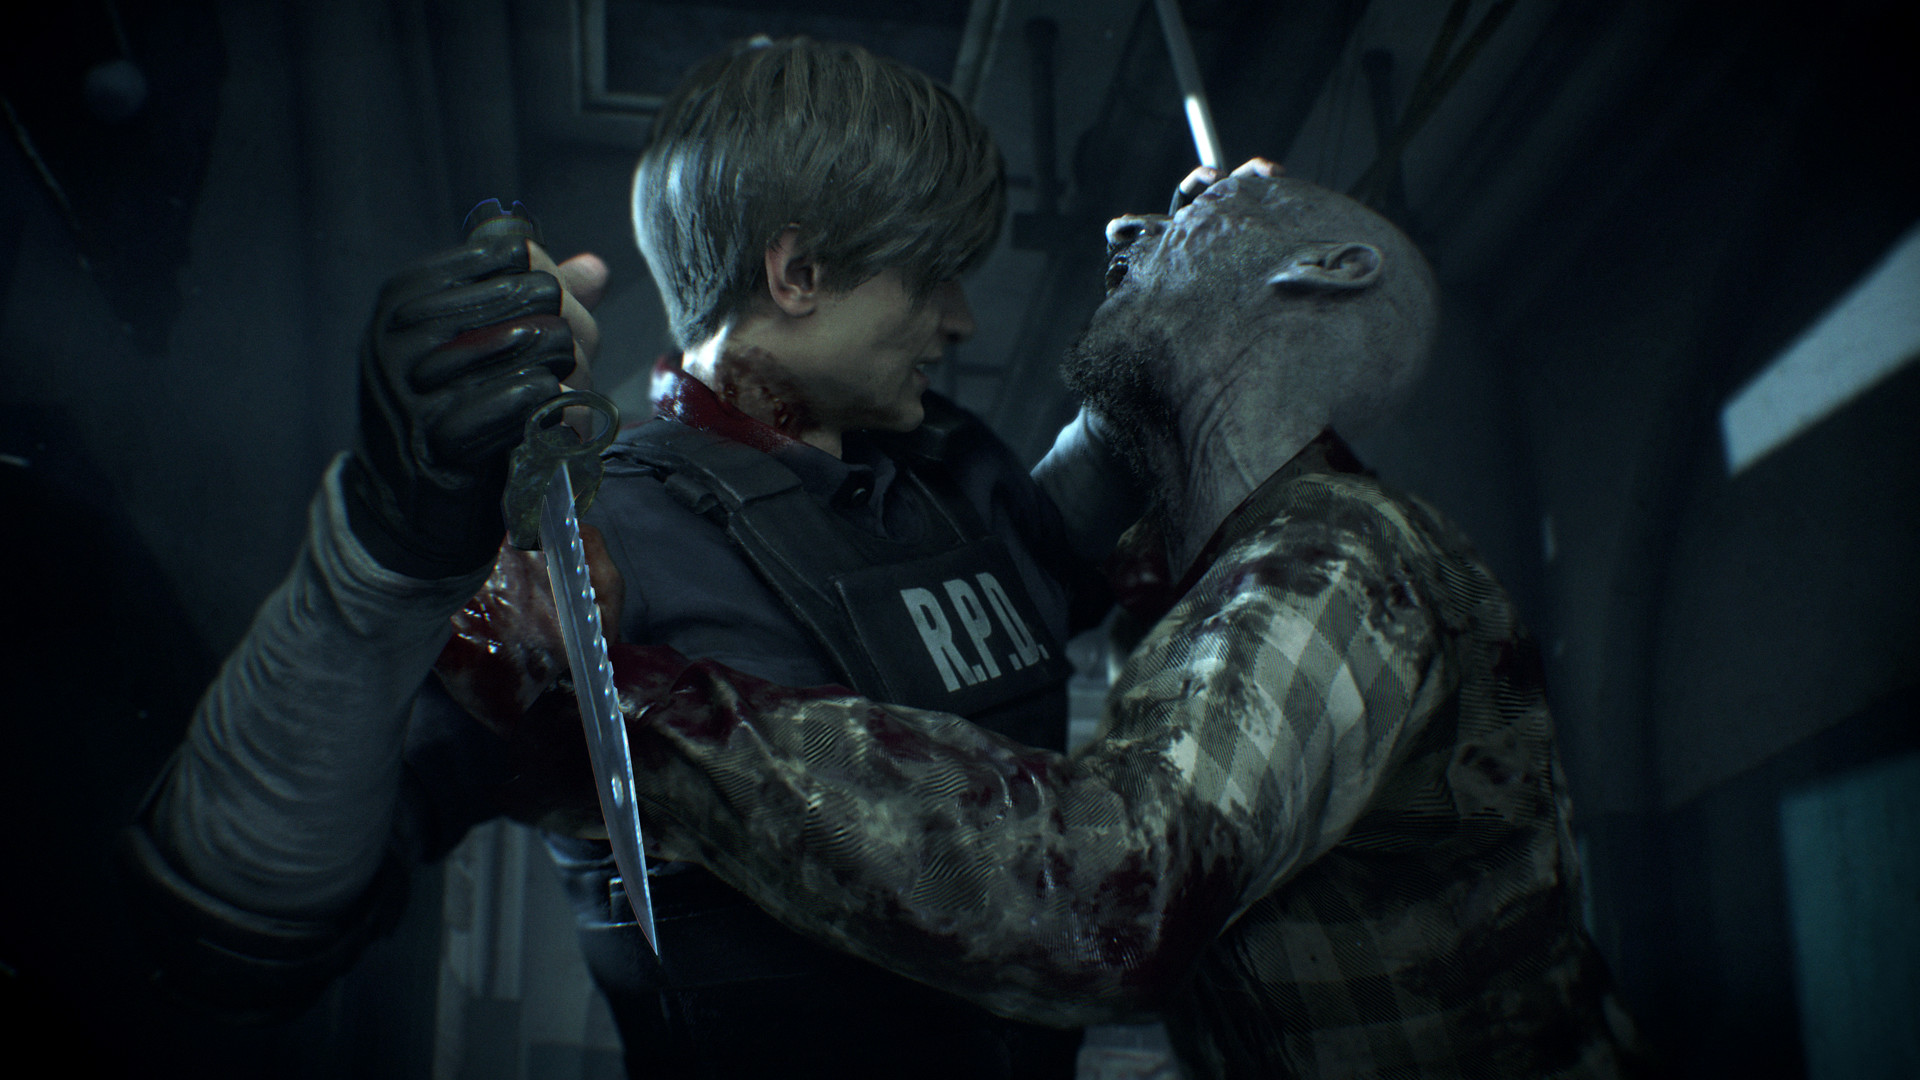 RESIDENT EVIL 2 / BIOHAZARD (STEAM KEY/RUSSIA AND CIS)